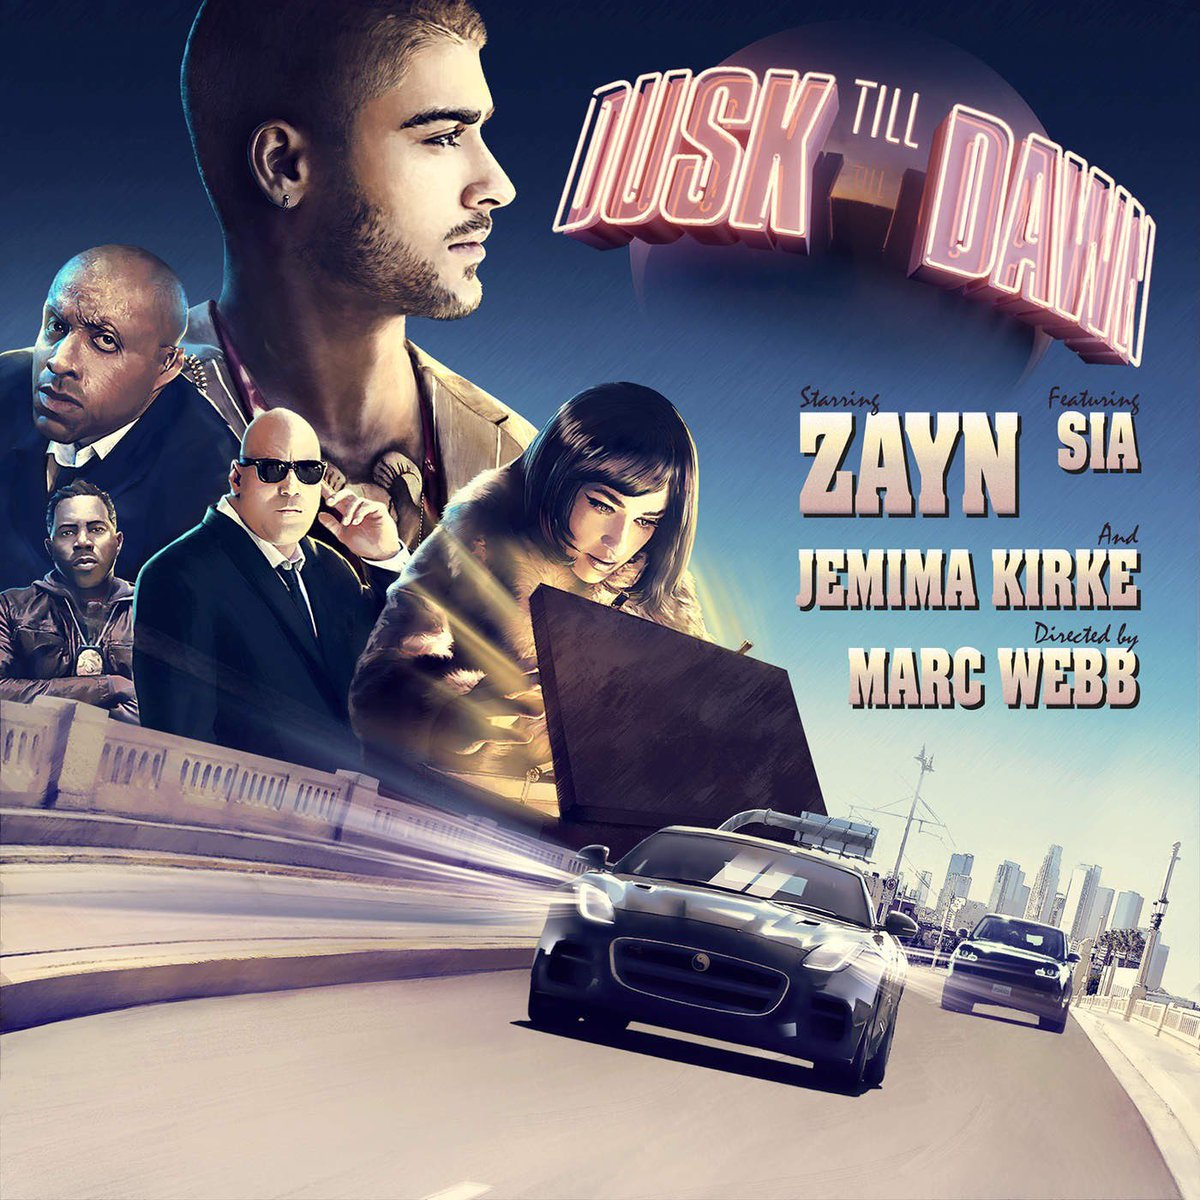 #Update | #DuskTillDawn has been certified Platinum in Australia for selling over 70k copies! Congratulations @zaynmalik <br>http://pic.twitter.com/by2pXJyKMR